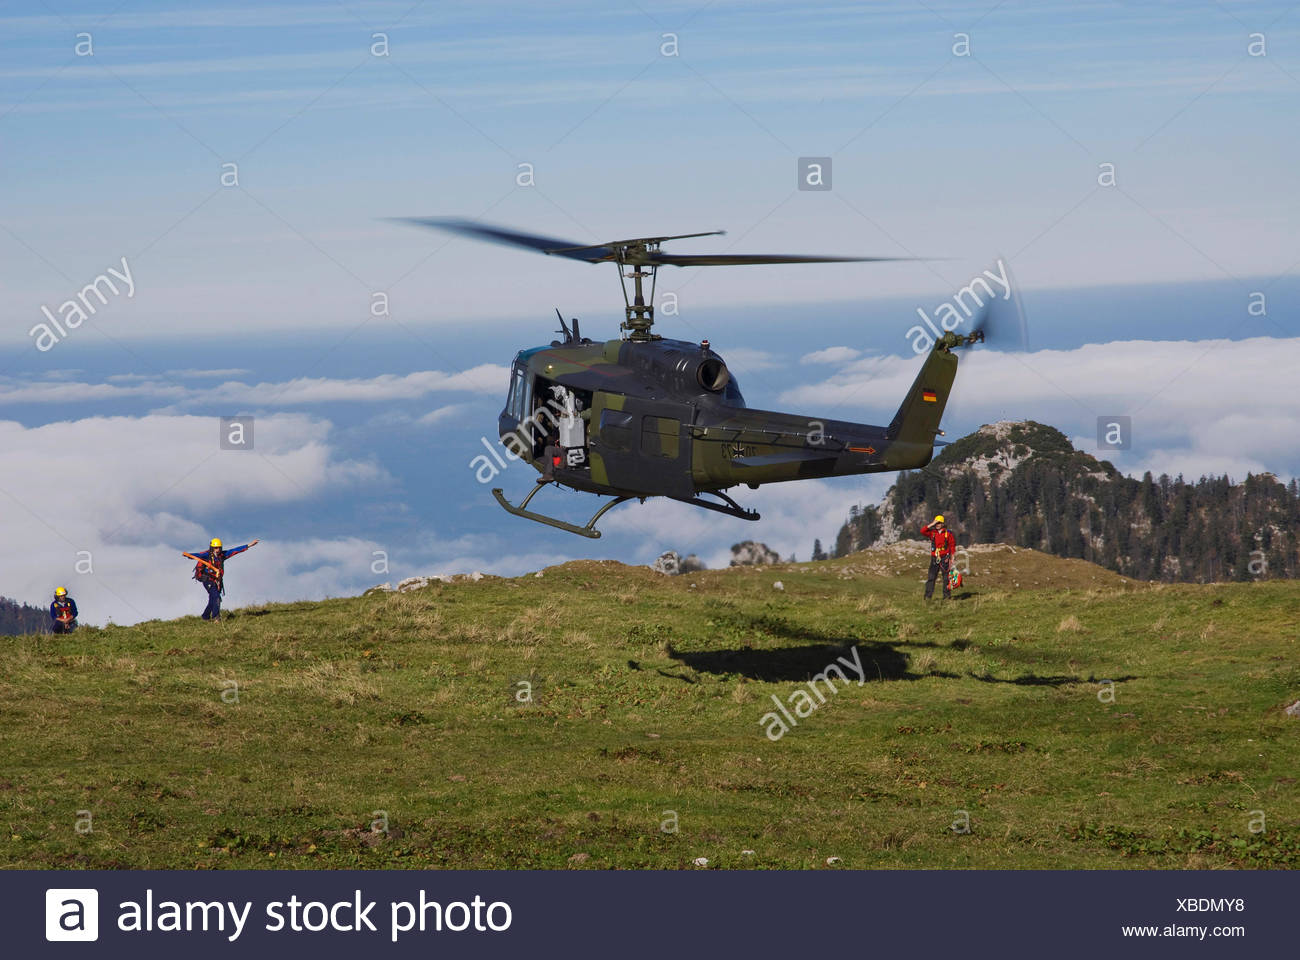 Landing Bundeswehr military helicopter marshalled by rescue personnel, Bavarian Alps, Upper Bavaria, Bavaria - Stock Image